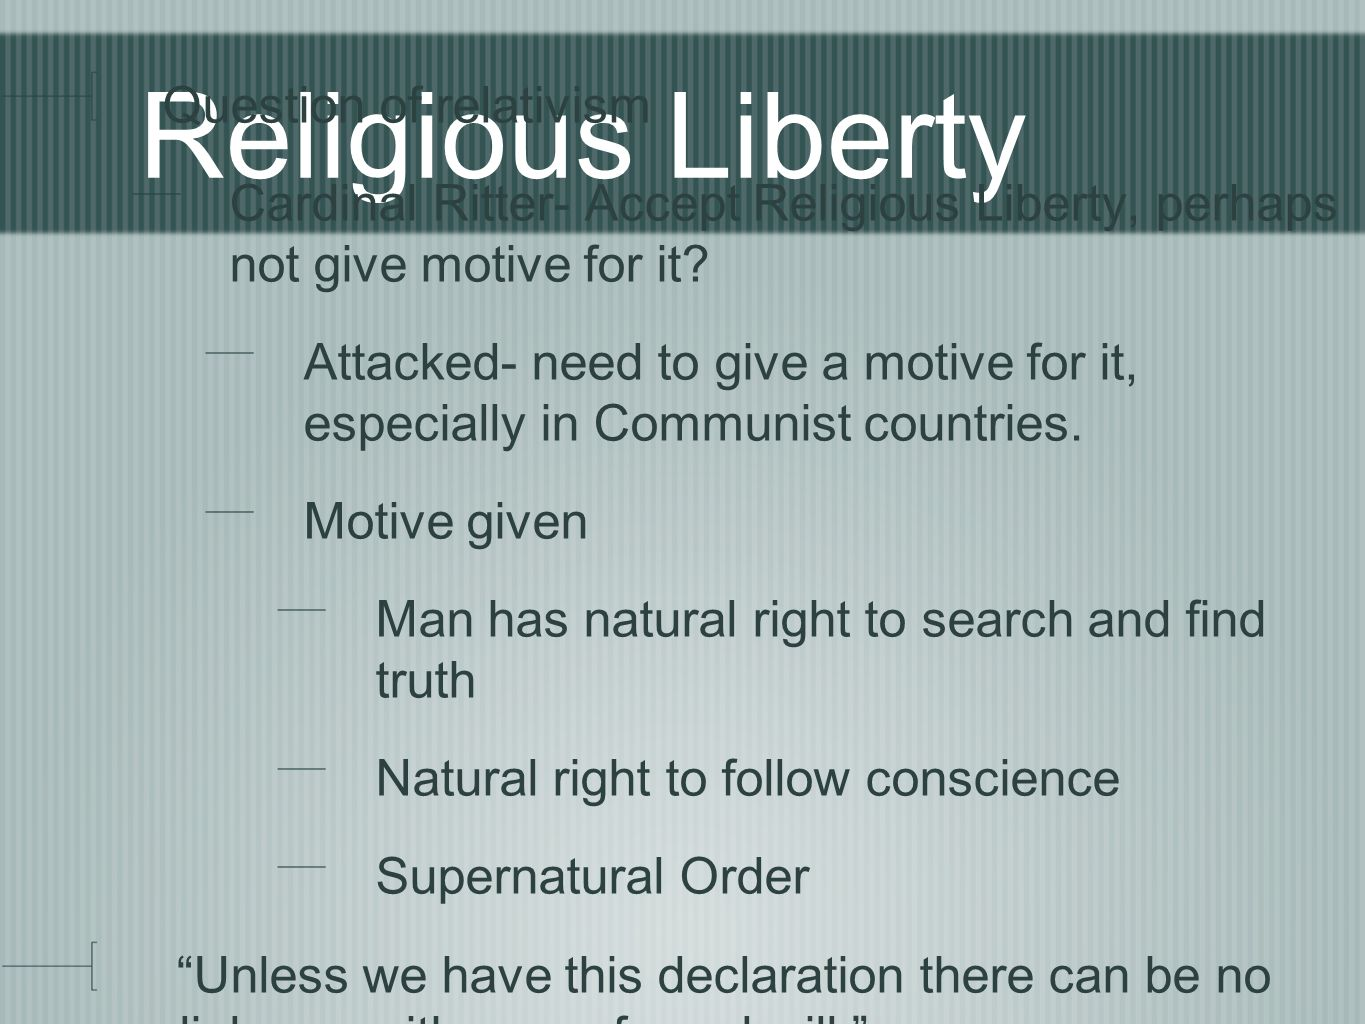 Religious Liberty Question of relativism Cardinal Ritter- Accept Religious Liberty, perhaps not give motive for it? Attacked- need to give a motive fo